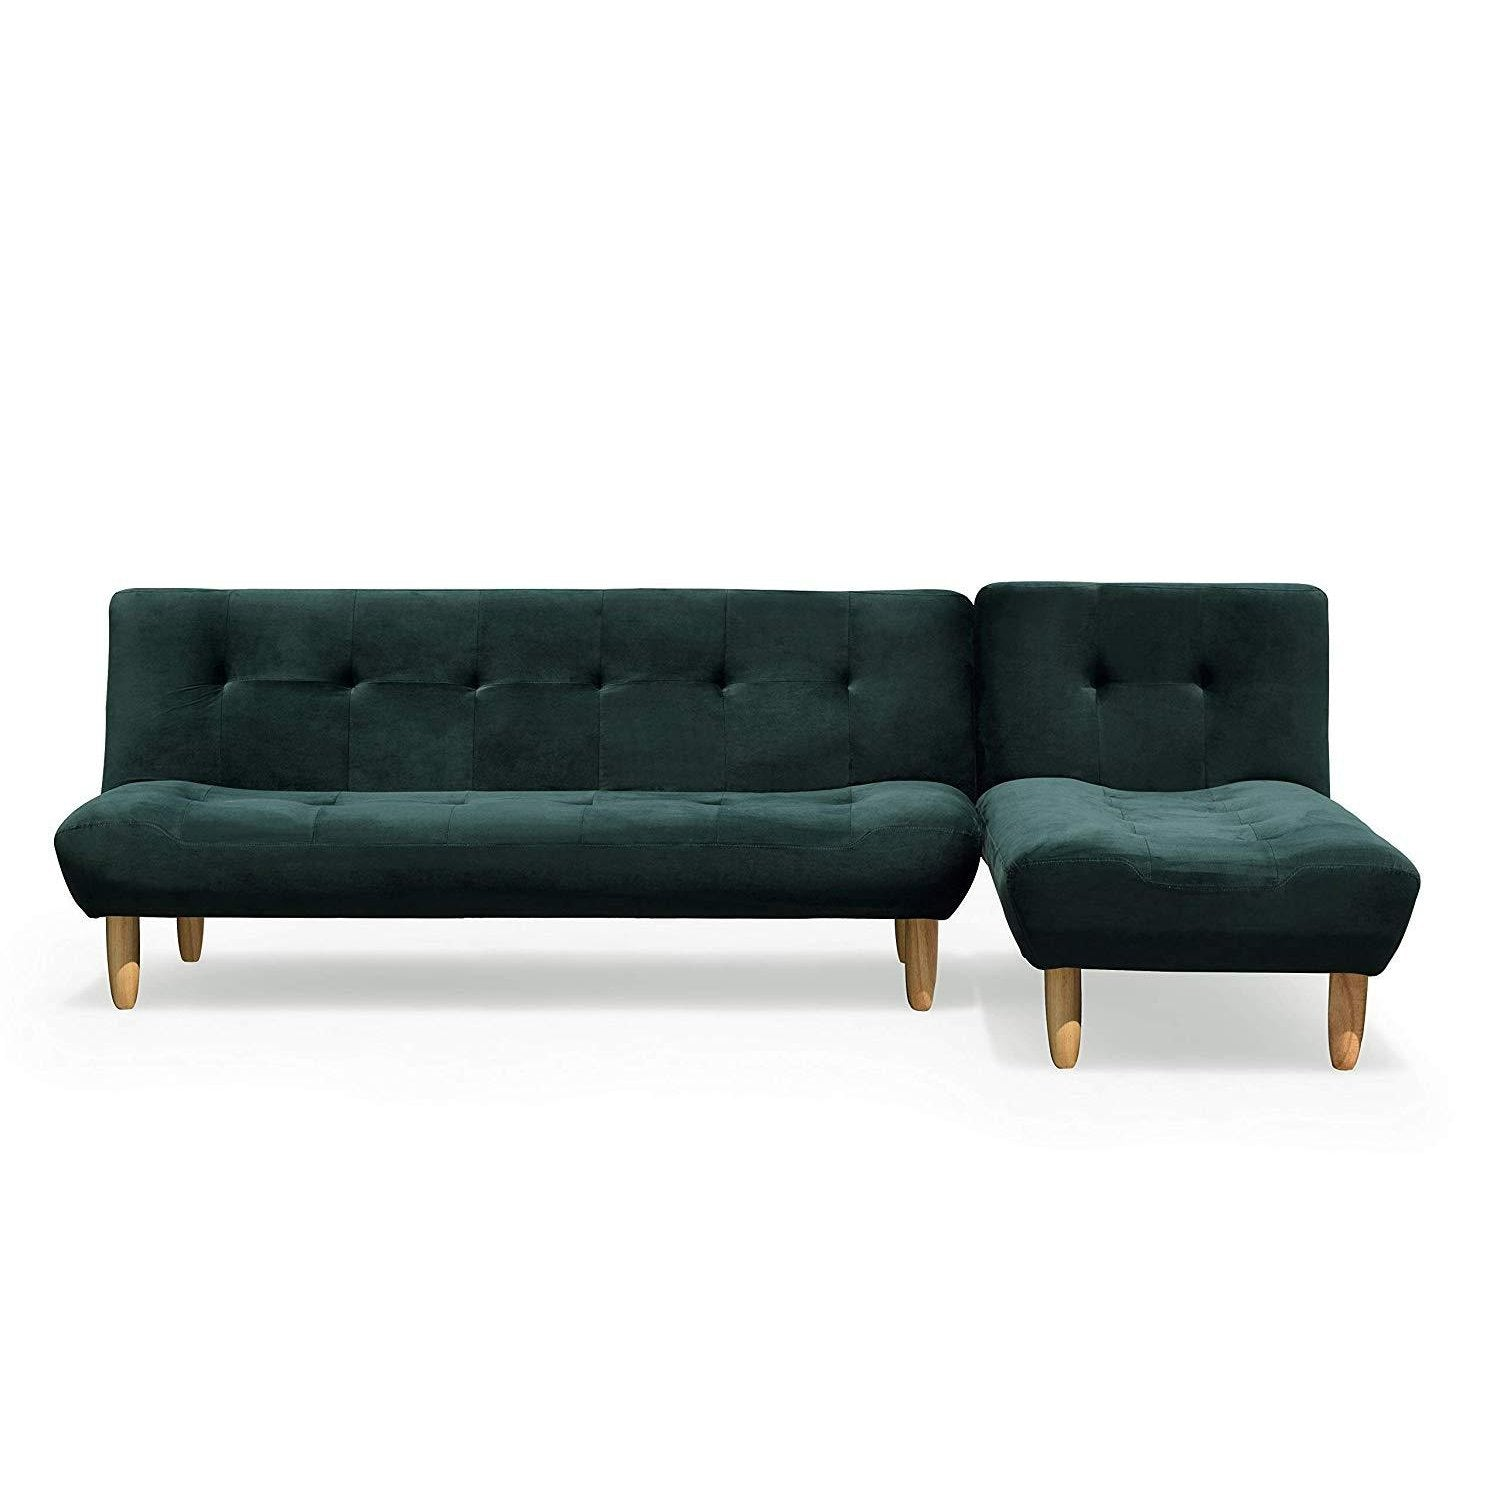 2+1 Modular Sofa Bed Settee with Chaise Lounge, L-shaped 3-Seater Corner Sofa Bed (Dark Green Velvet)